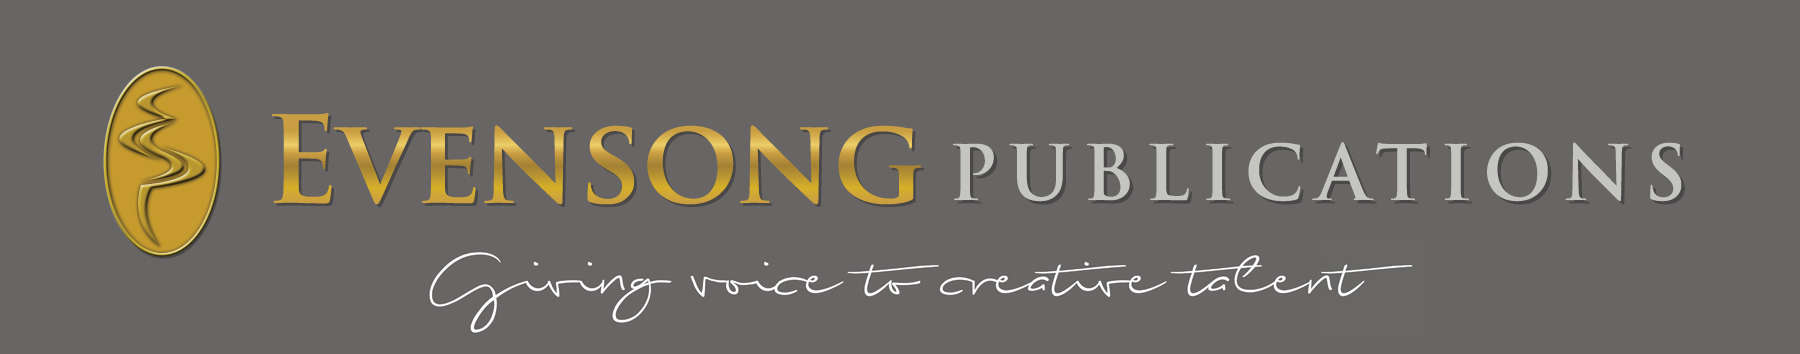 evensong-publications-banner